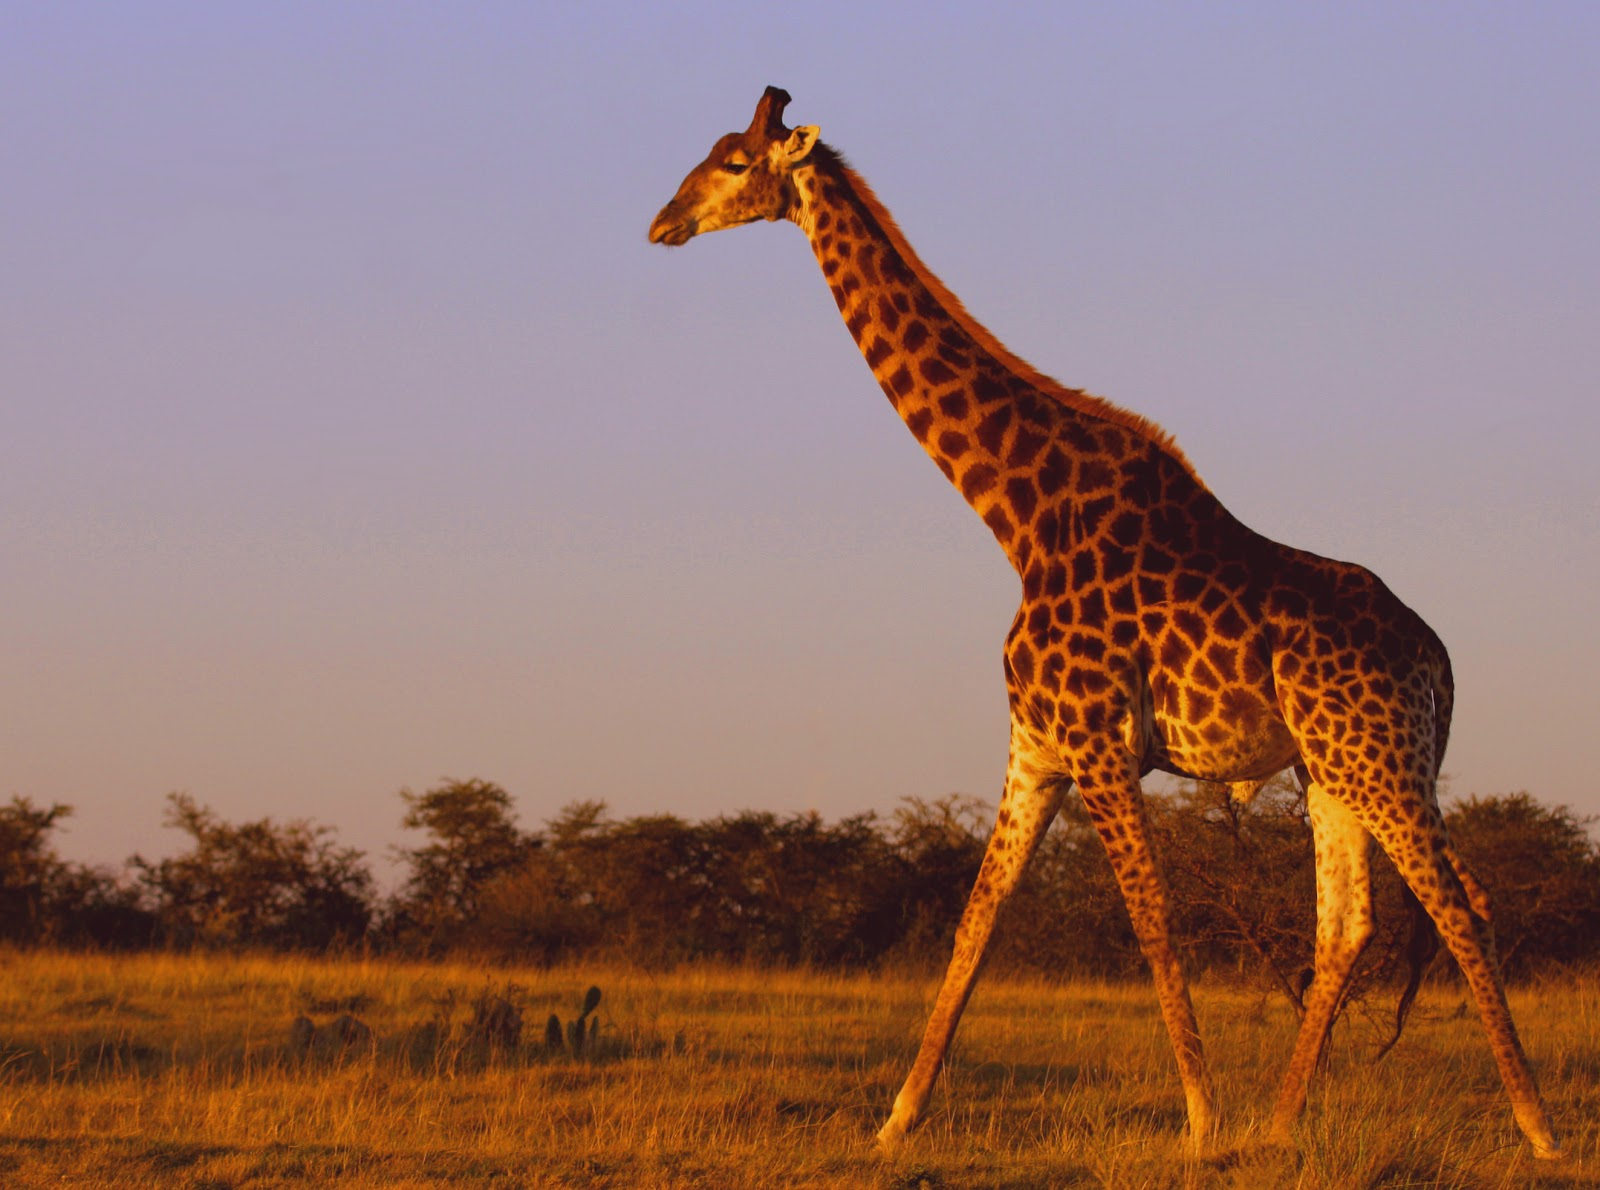 The Game Lodge Index: Fun Facts about Giraffes!